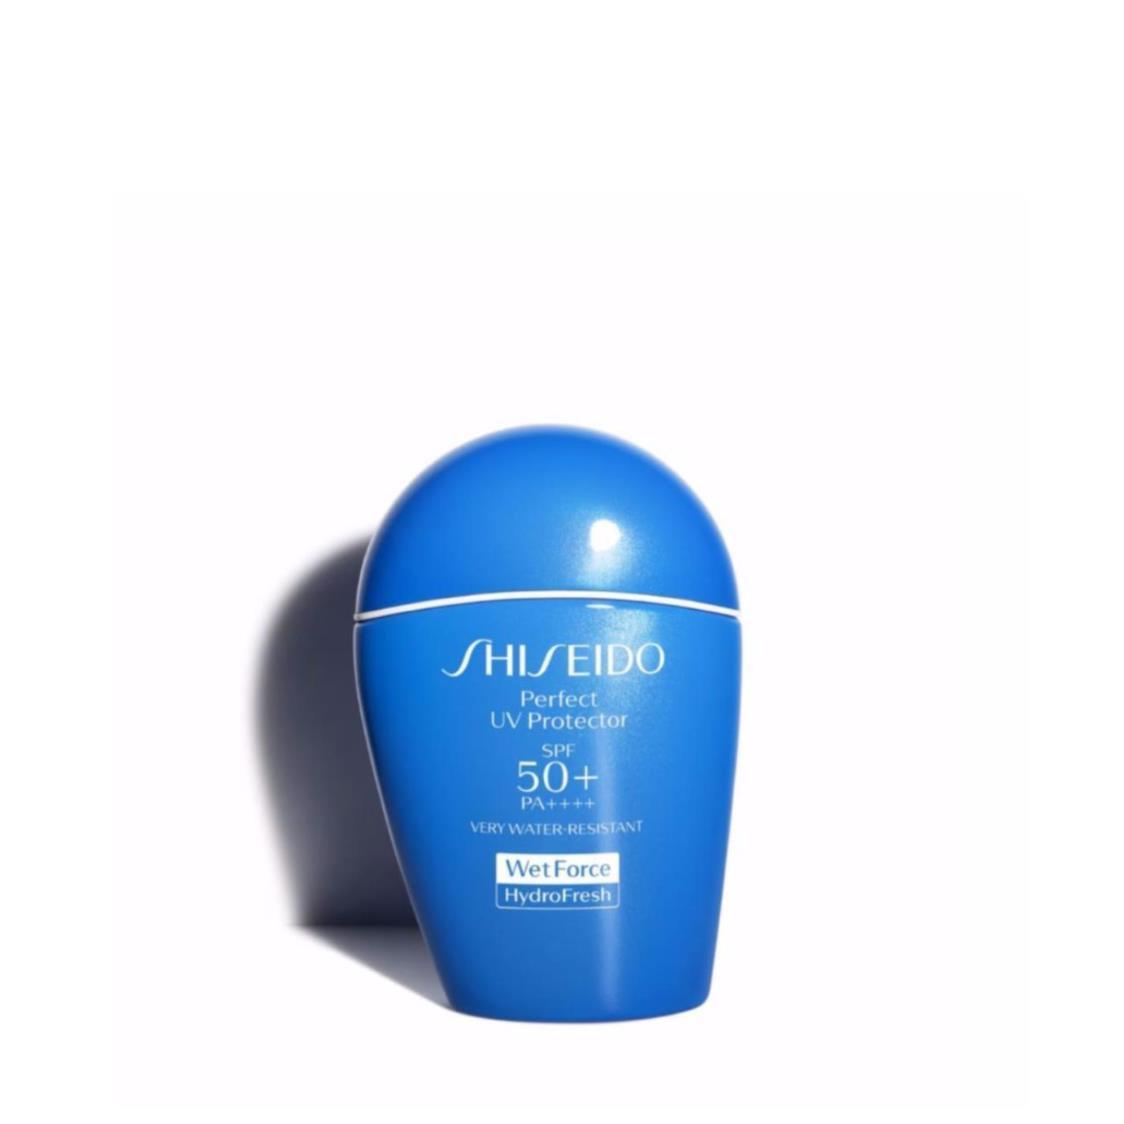 Shiseido Global Suncare Perfect UV Protector HydroFresh 50ml